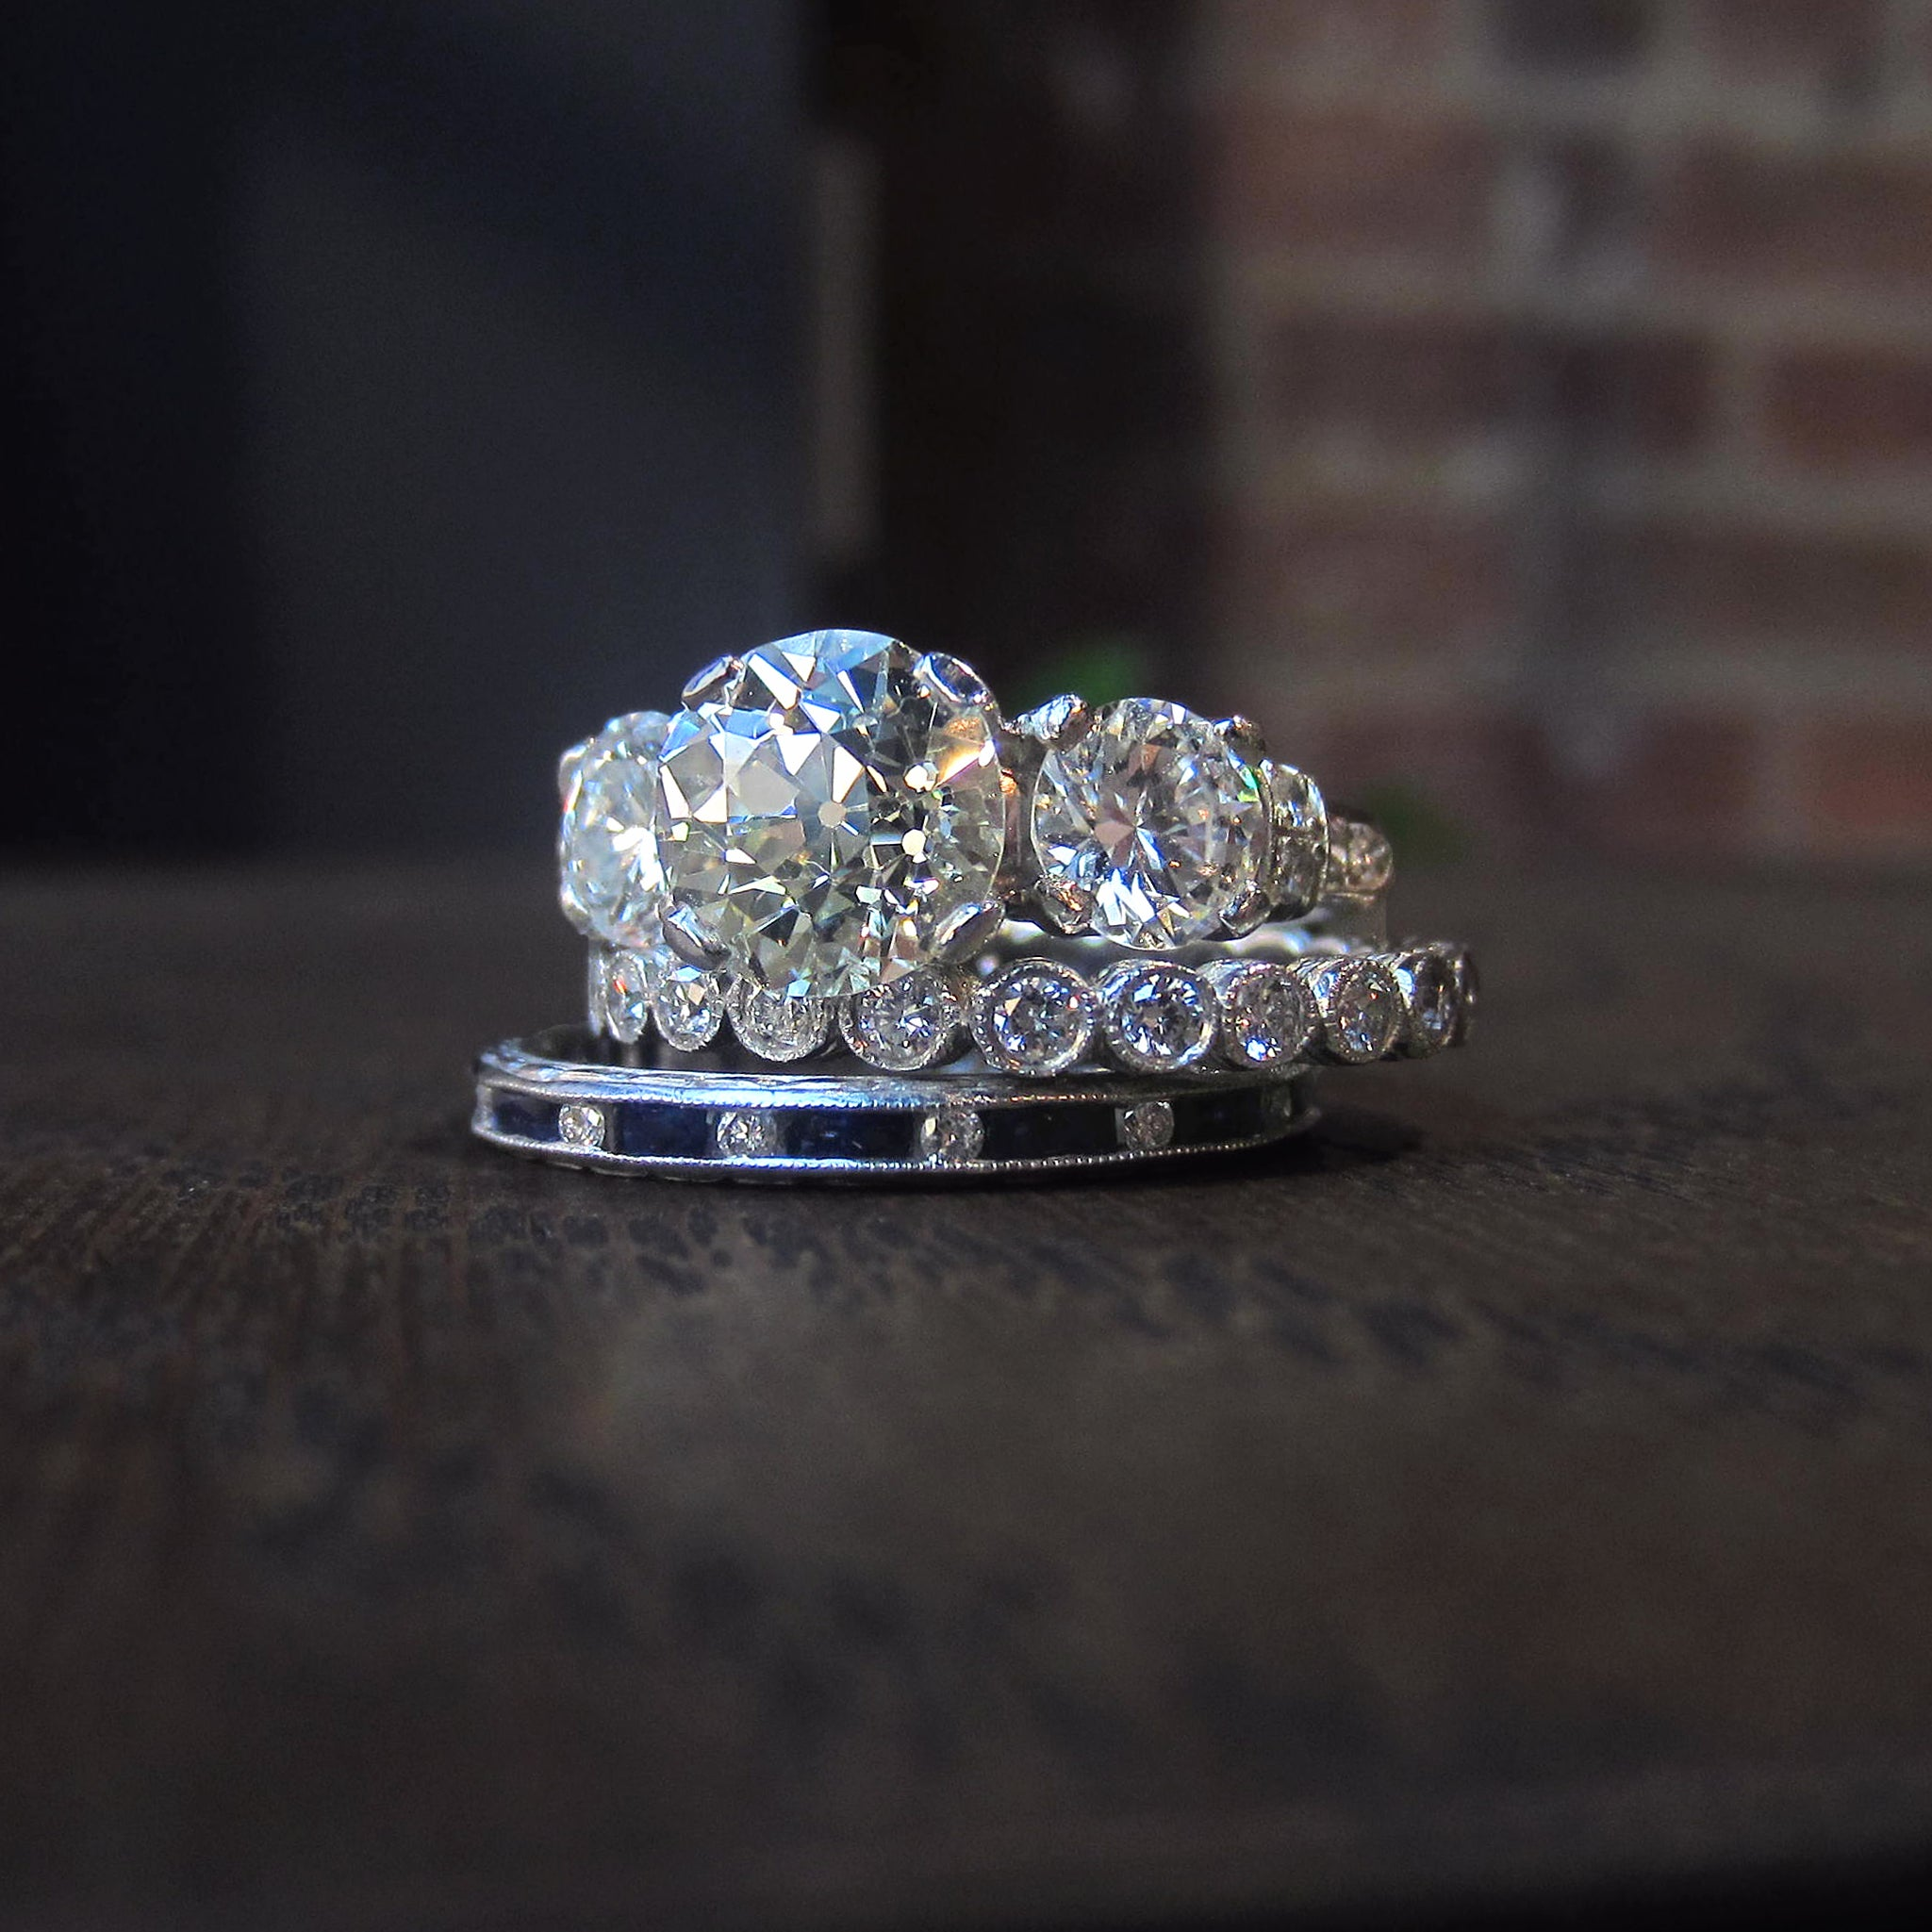 Vintage diamond engagement ring and wedding bands from Doyle & Doyle